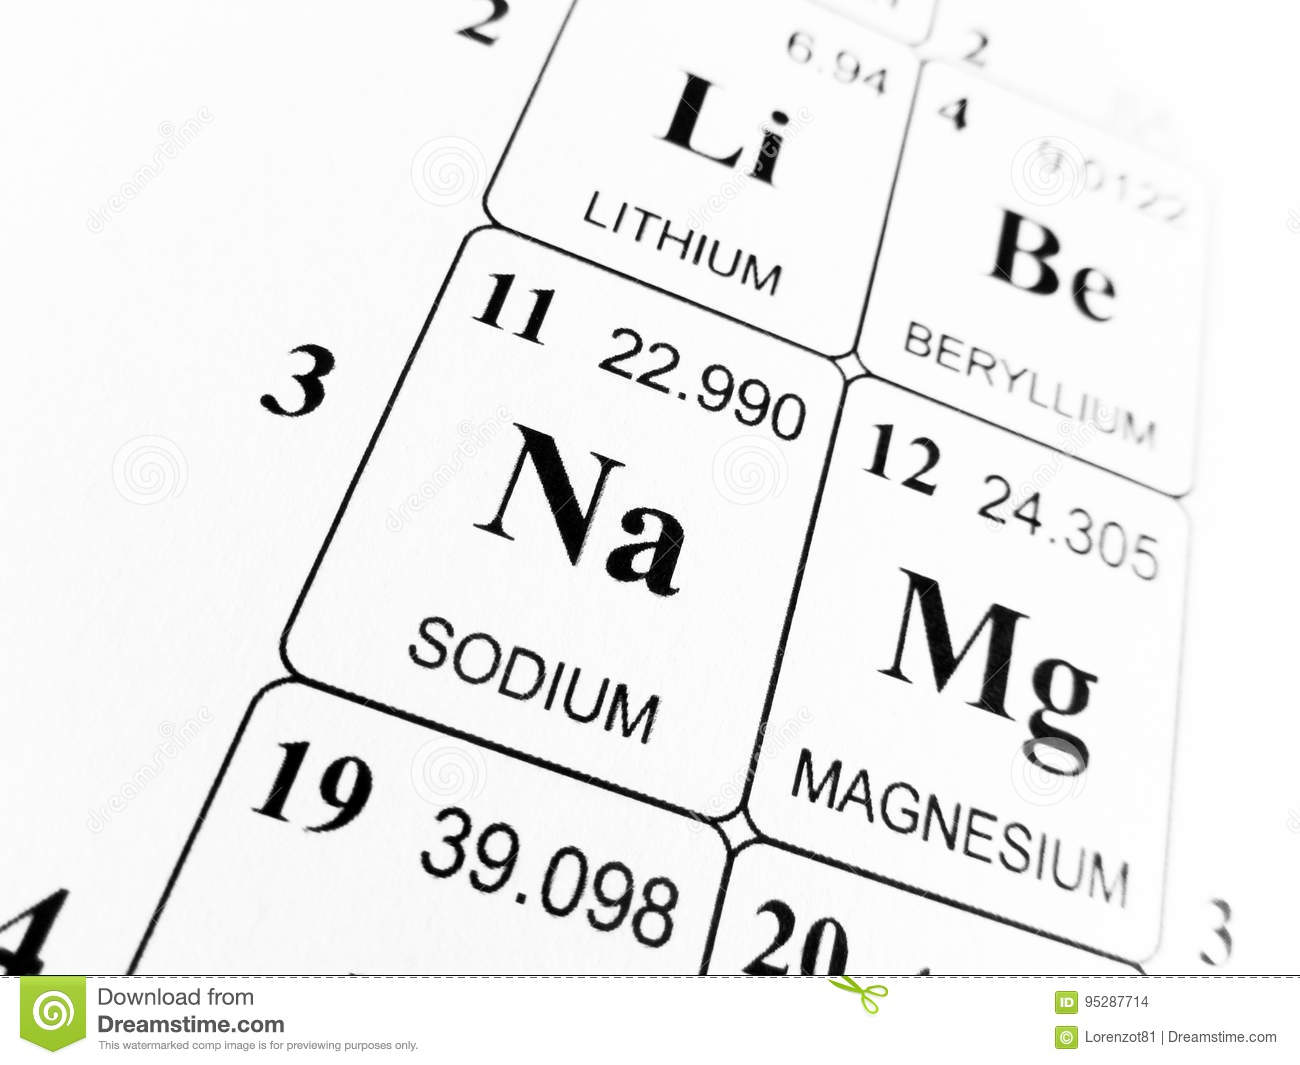 Where is sodium found on the periodic table image collections where is sodium located on the periodic table image collections where is sodium found on the gamestrikefo Choice Image